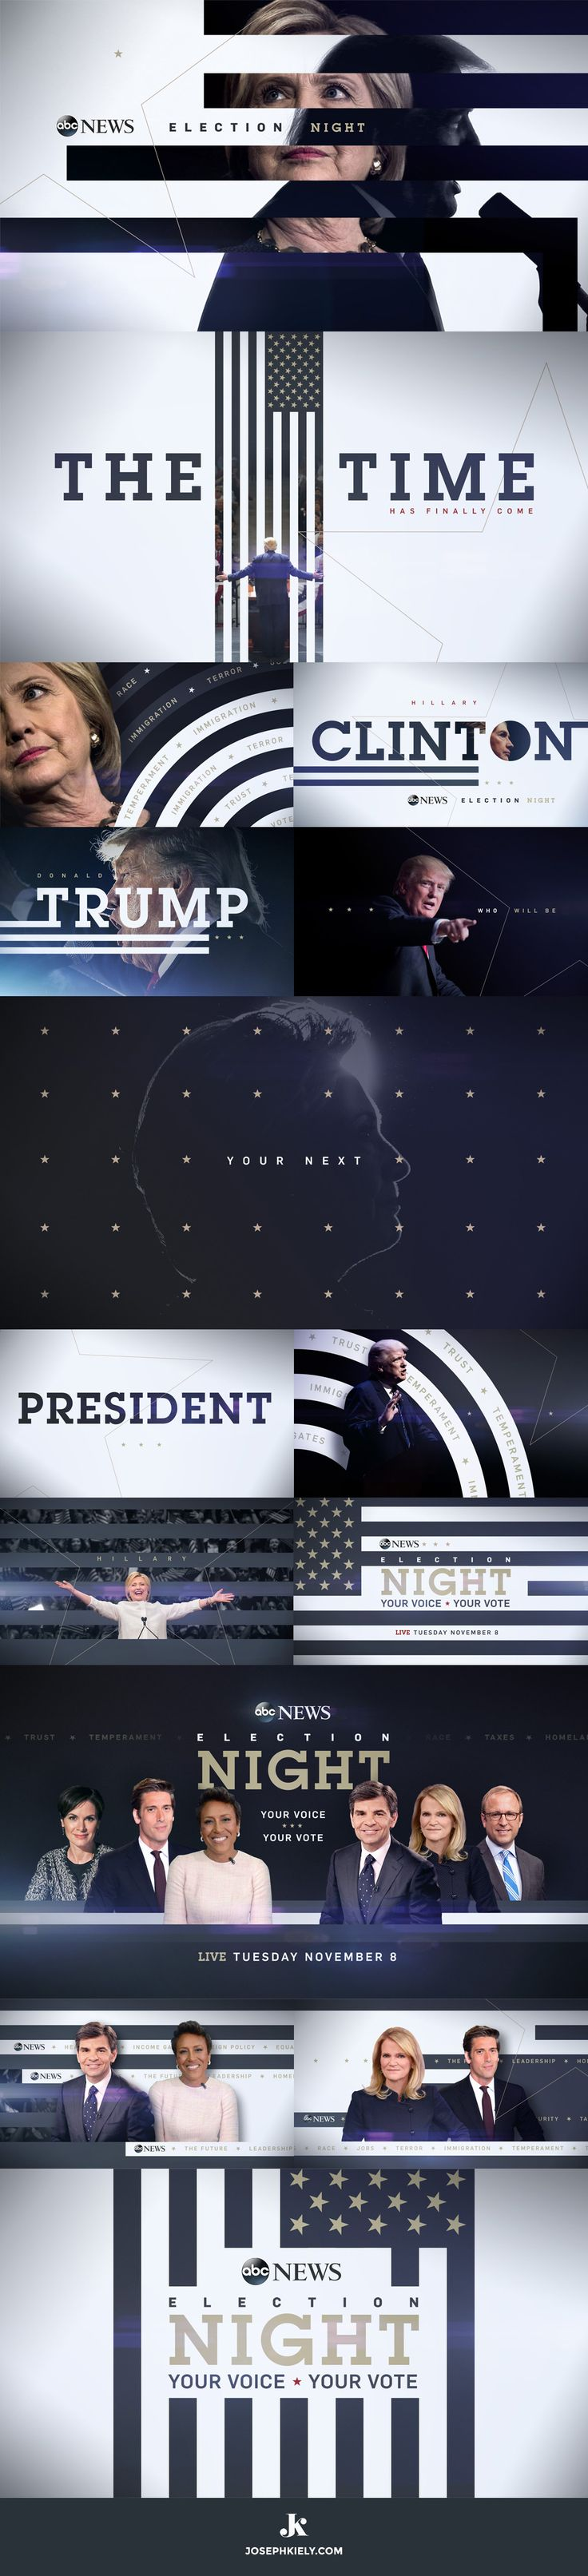 ABC NEWS Election Night 2016. Promo design and creative direction by Joseph Kiely for Stun Creative.